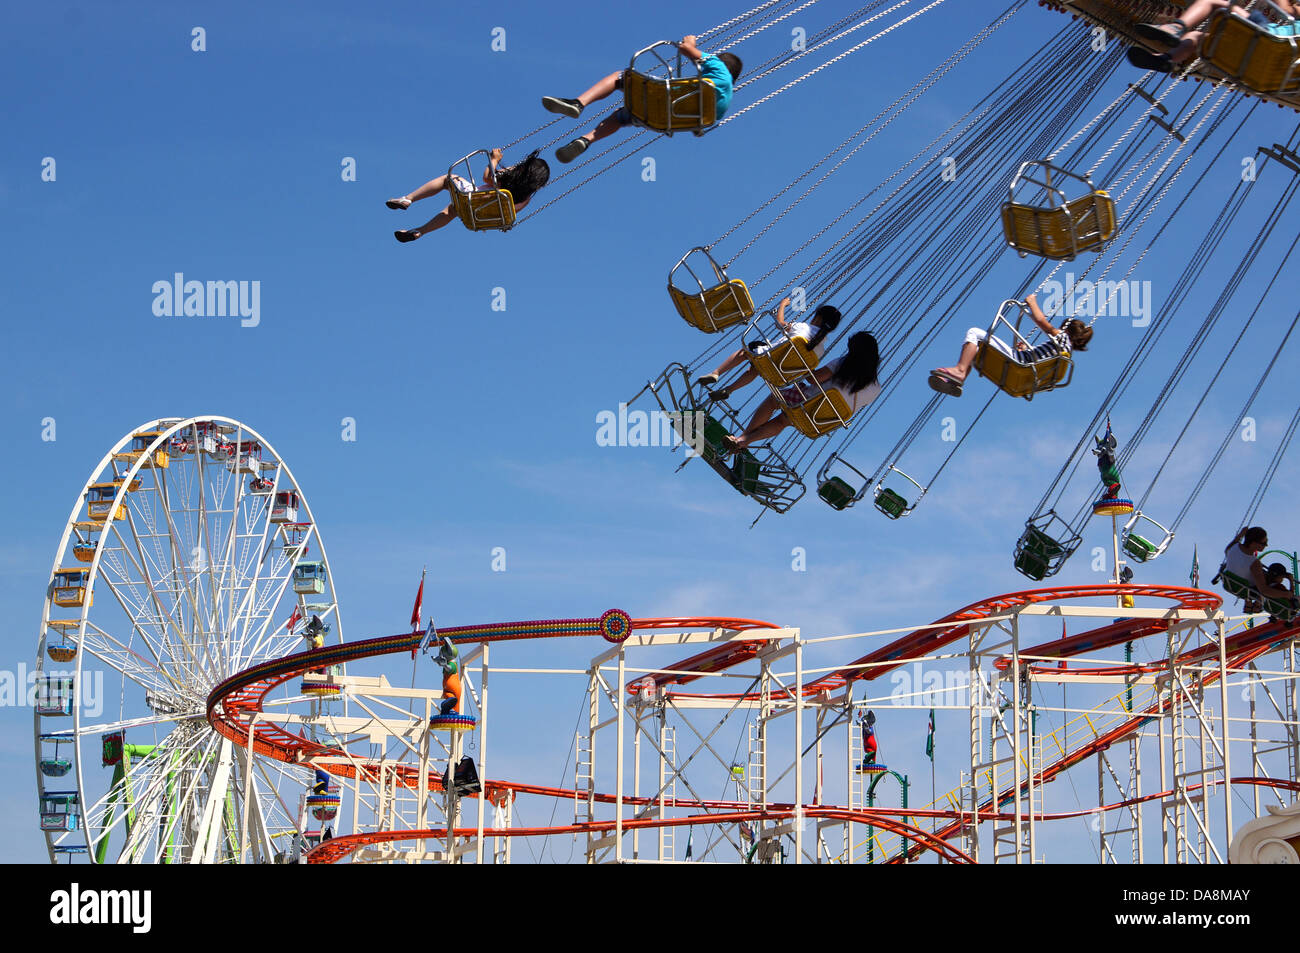 ferris wheel, roller coaster and chairoplane carousel at the annual Schuetzenfest fun fair in Hanover, Germany, - Stock Image